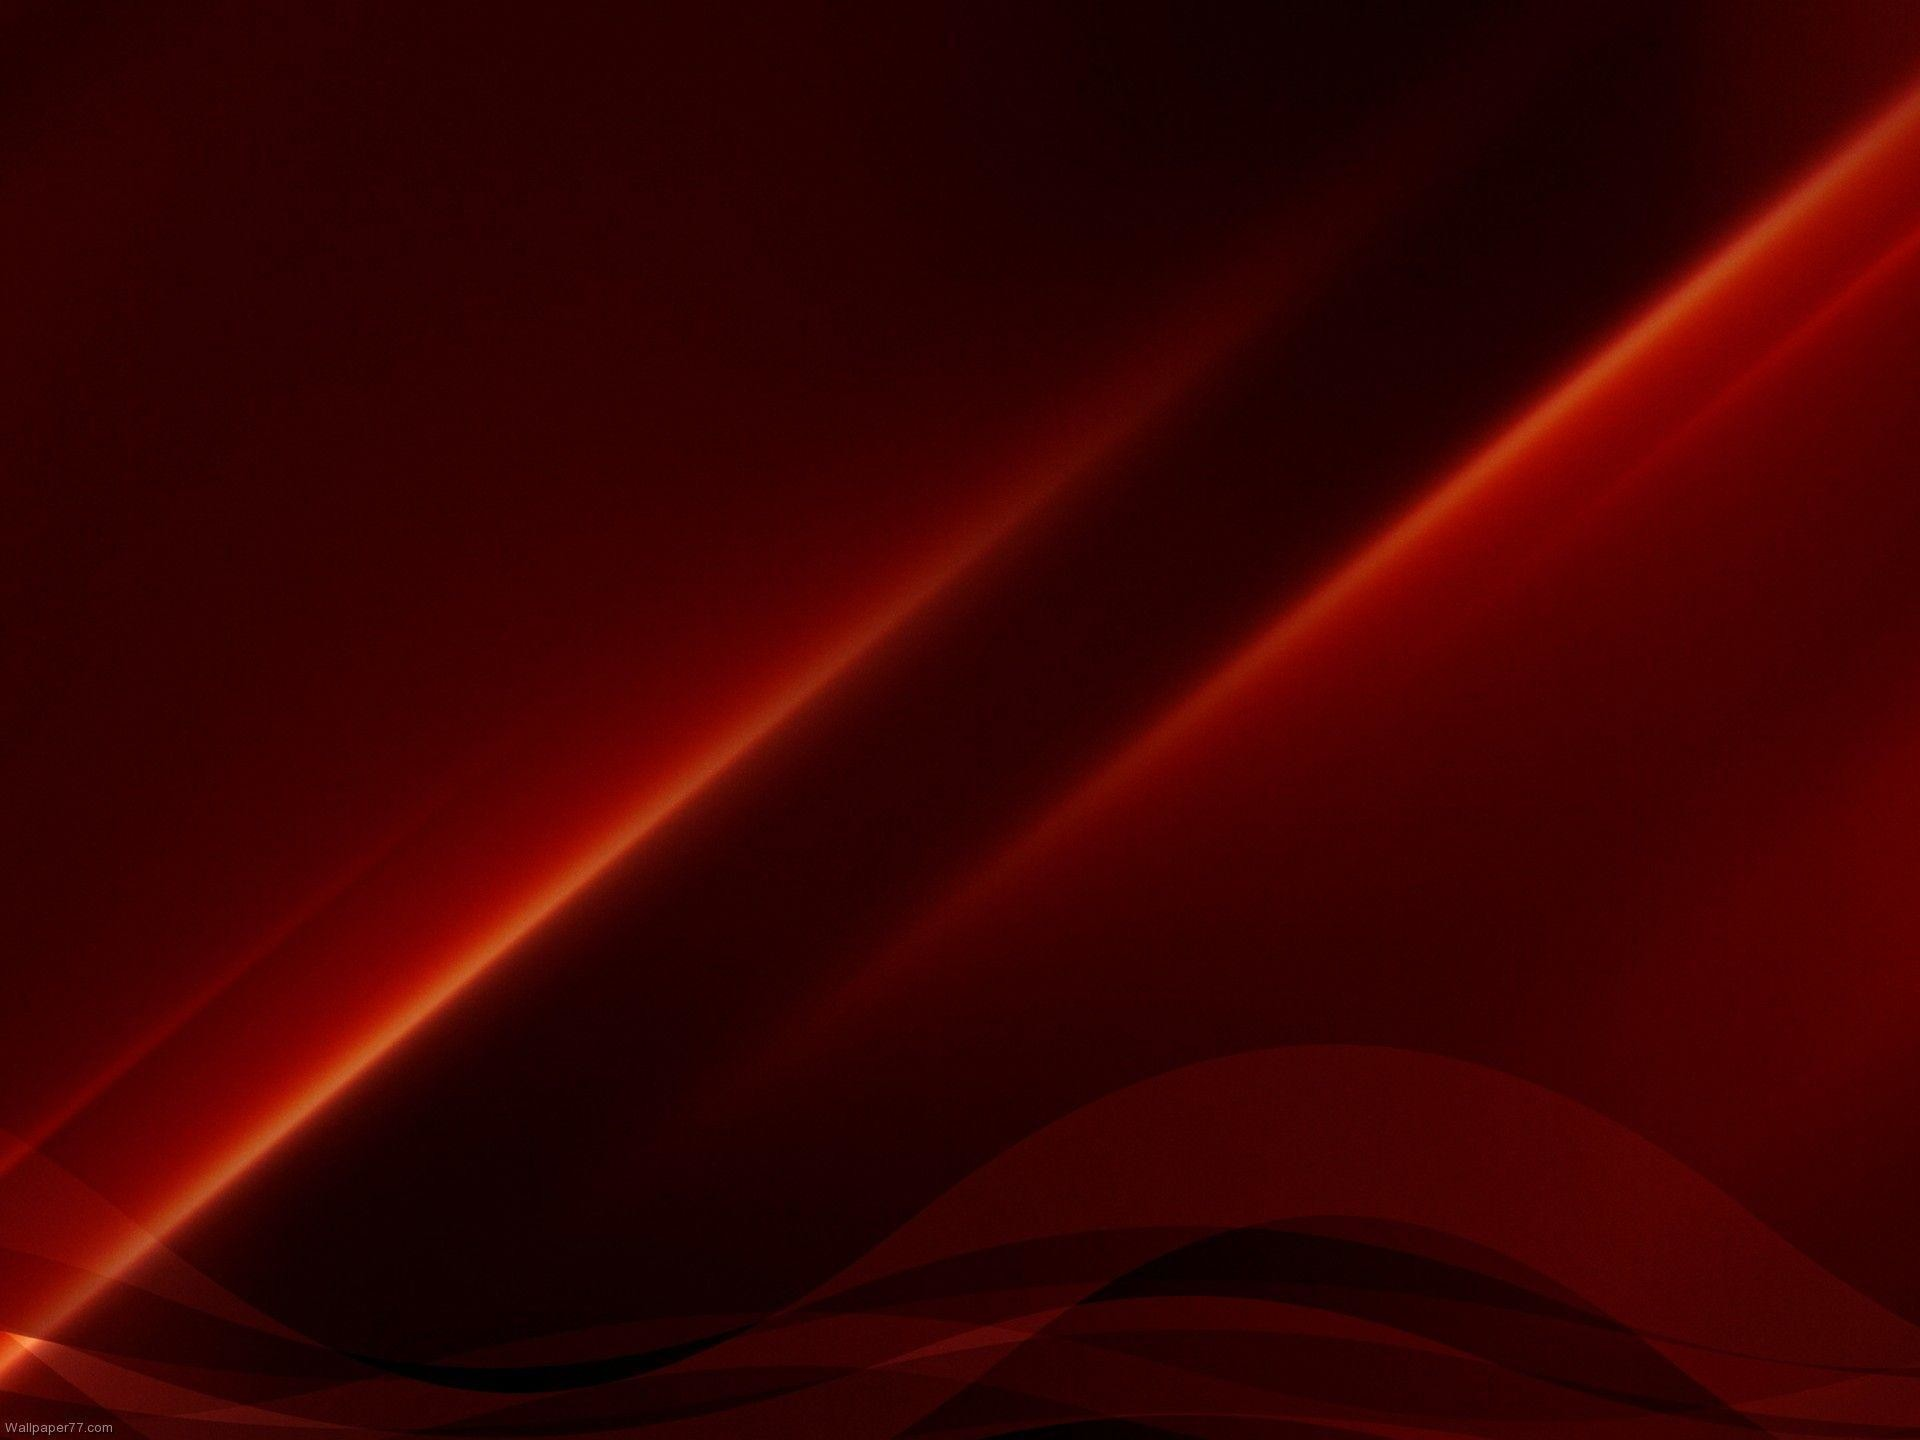 Dark Red Abstract Backgrounds Hd Background 9 HD Wallpapers